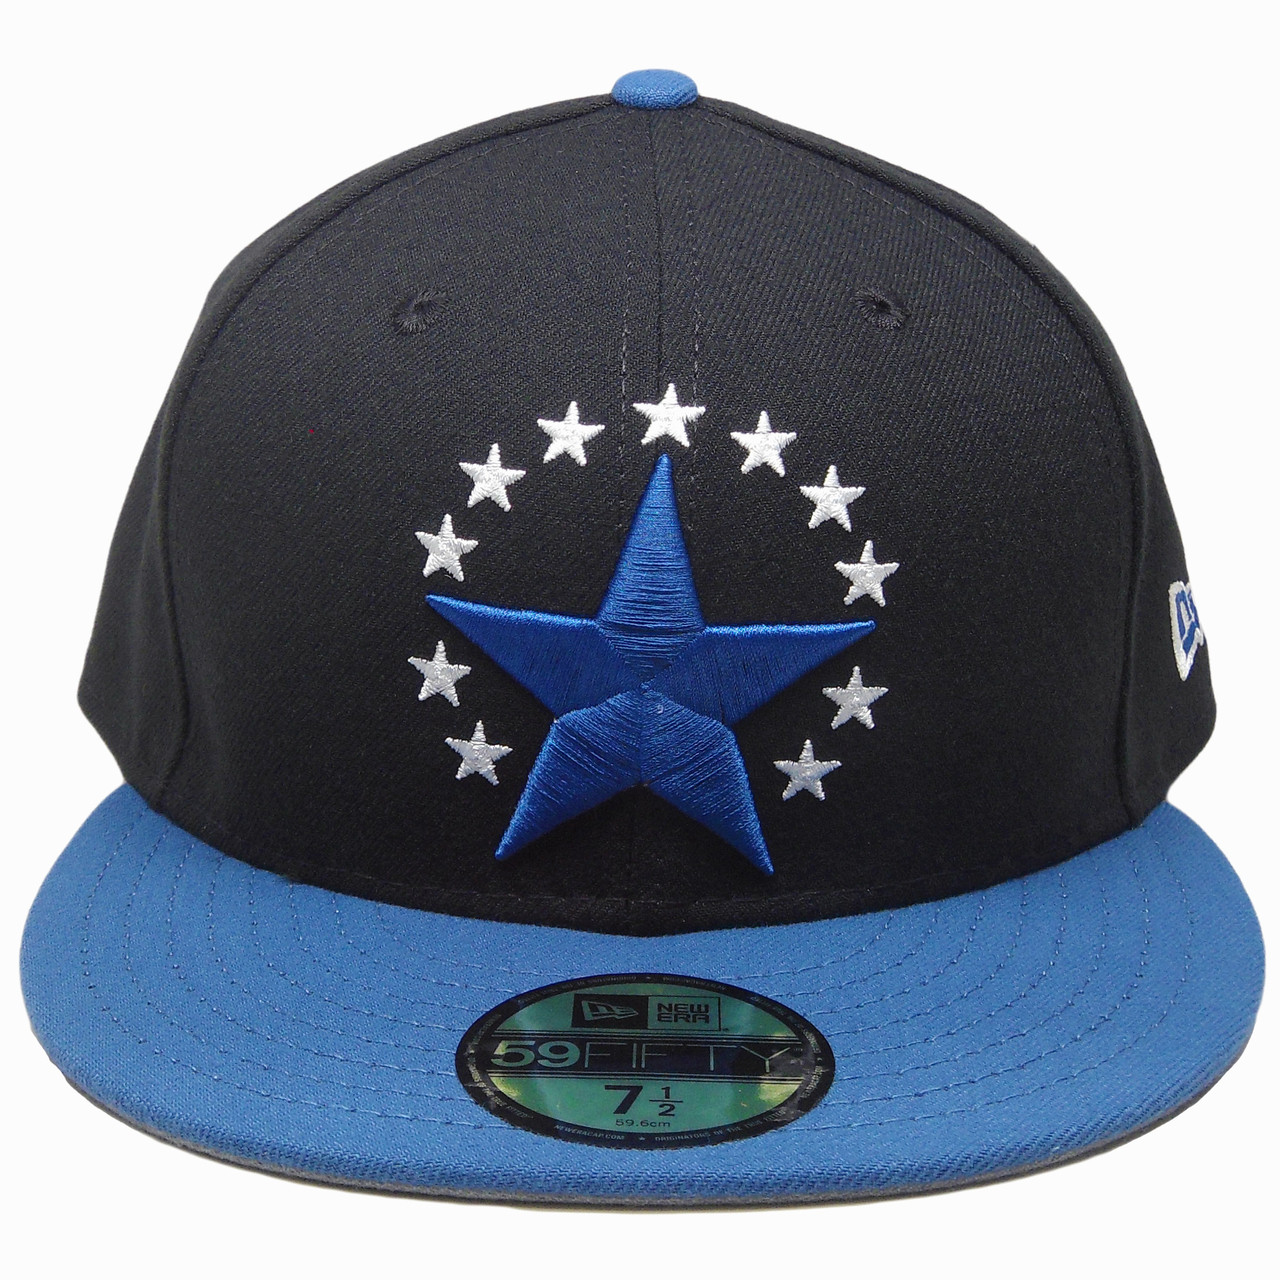 dd71af9adf1 ... coupon for stars new era custom made 59fifty fitted hat black flint  blue 54466 5d0f2